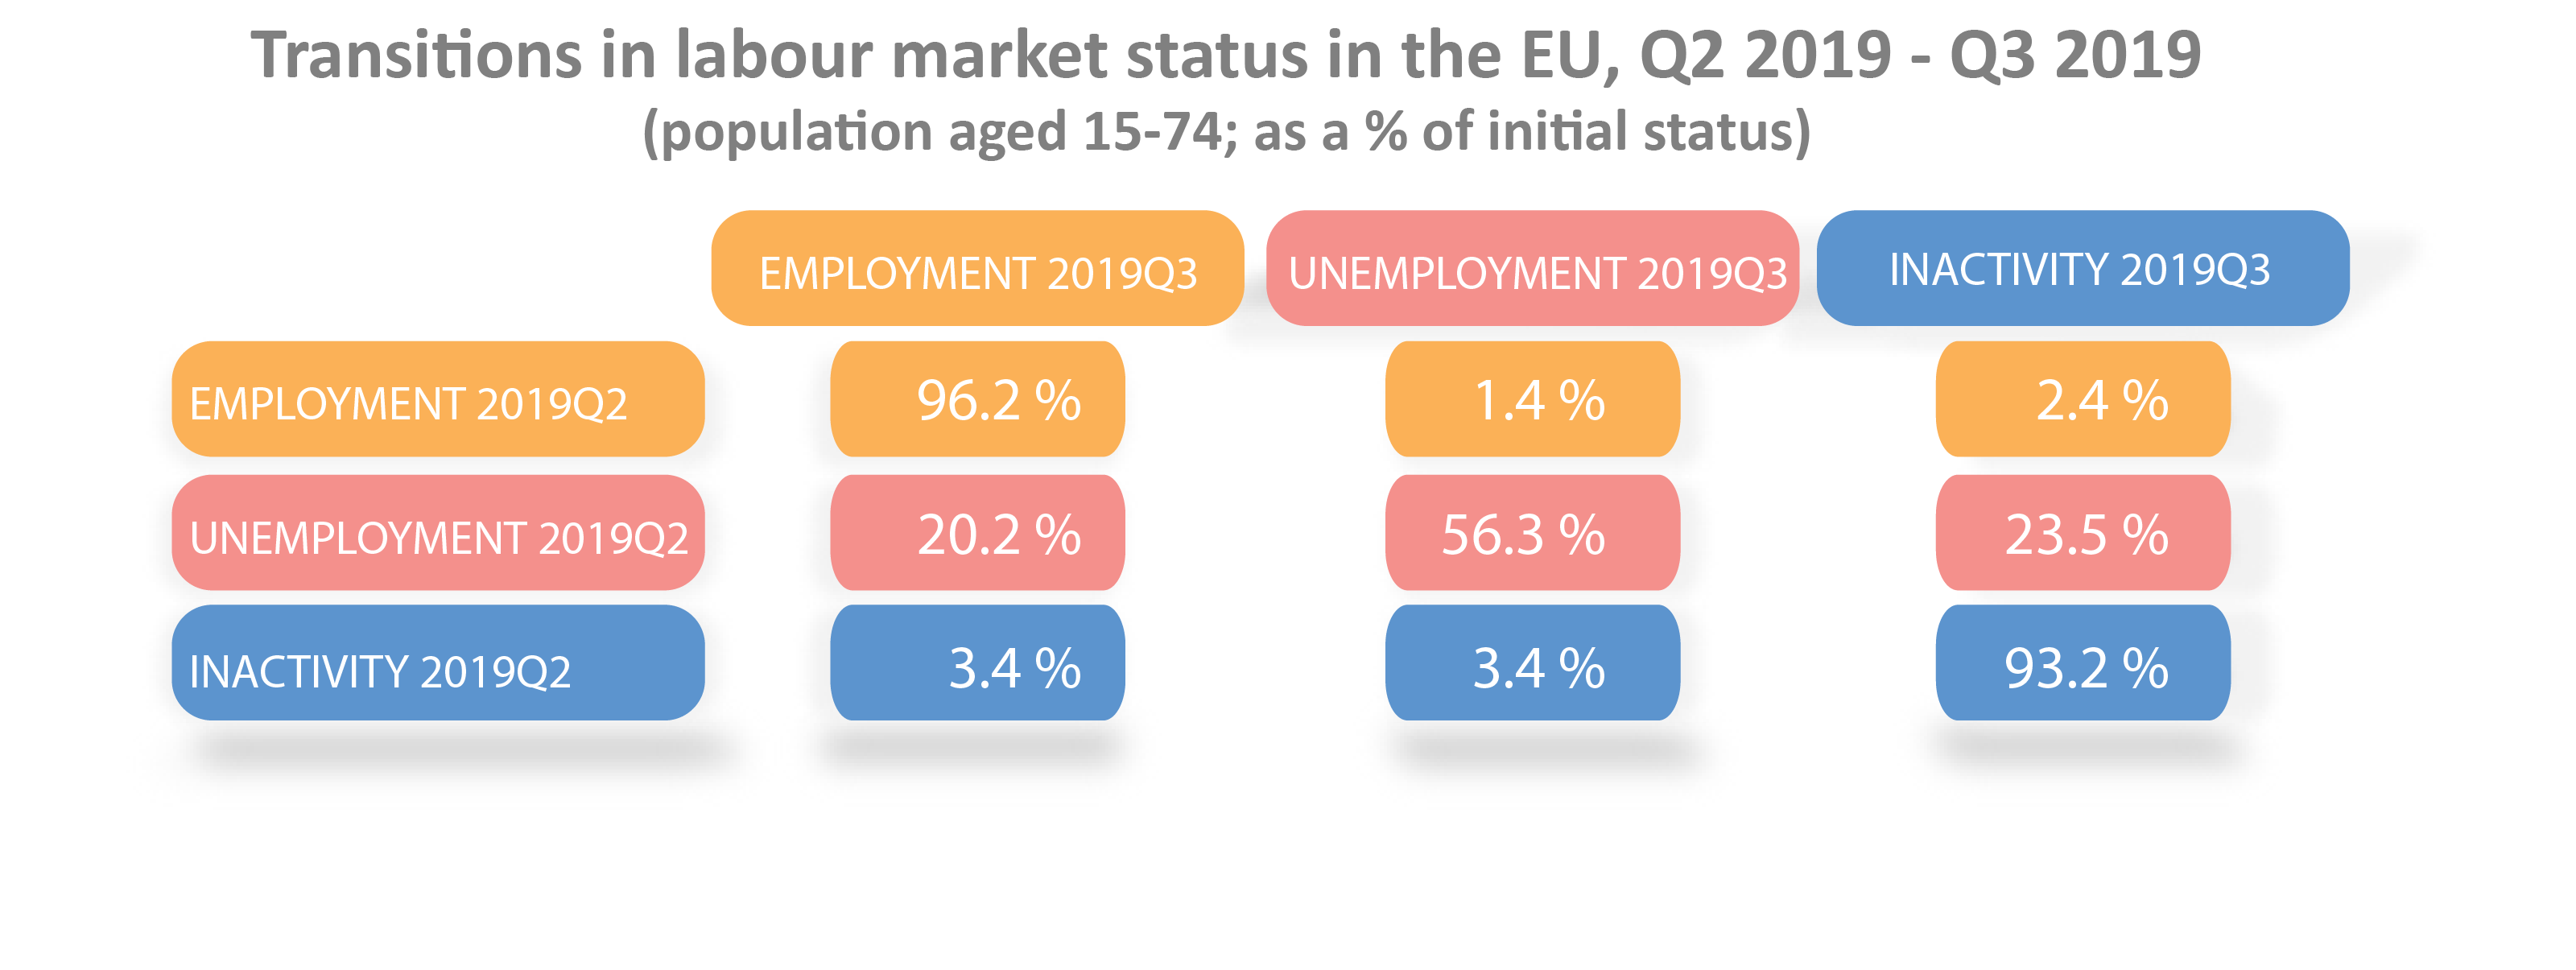 Transitions in labour market status in the EU, matrix, Q2 2019 - Q3 2019